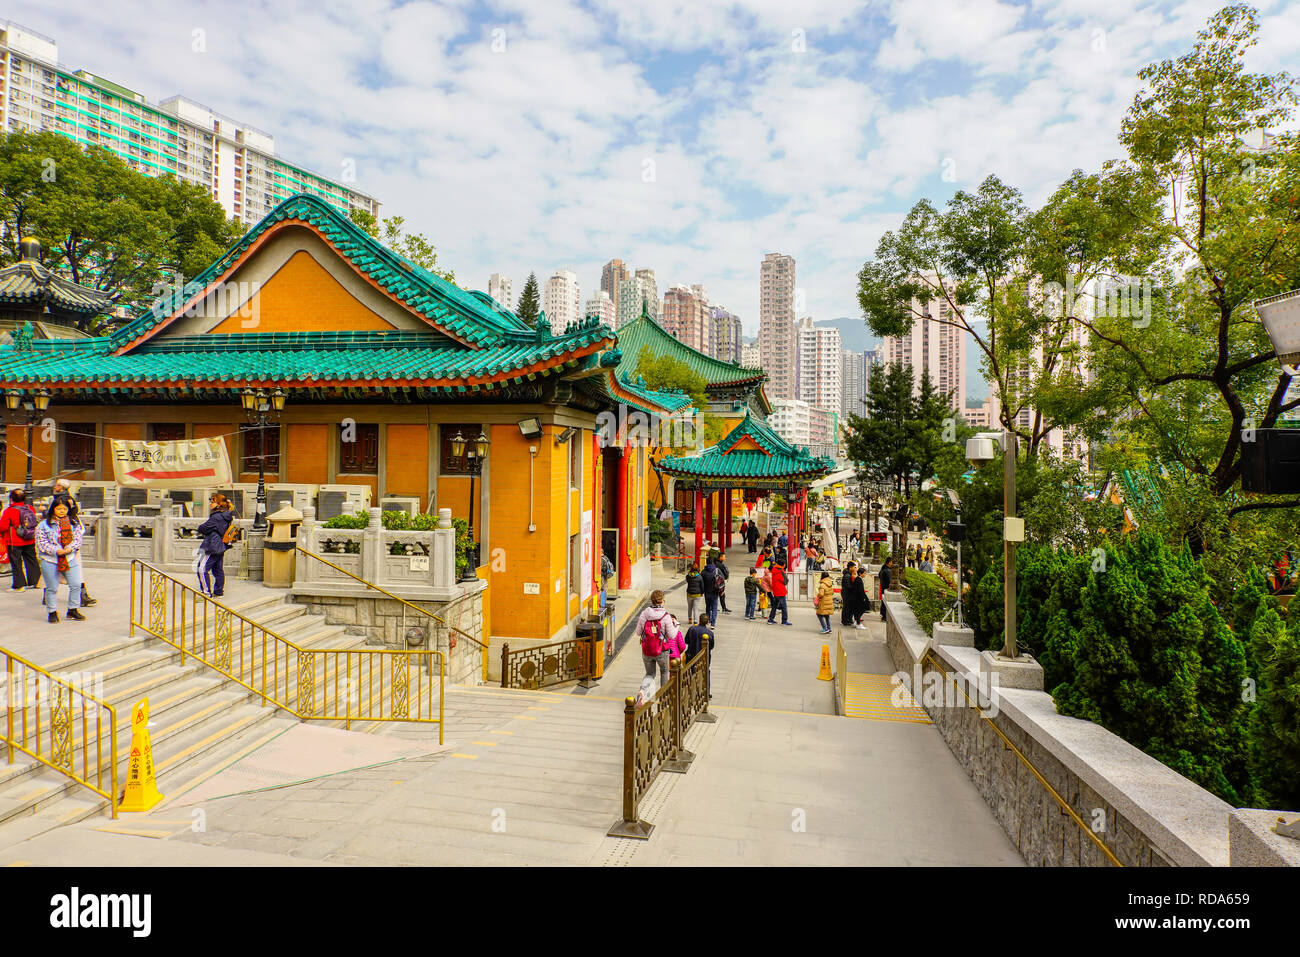 Visualizzare Sik sik Yuen Wong Tai Sin tempio complesso, Hong Kong. Immagini Stock